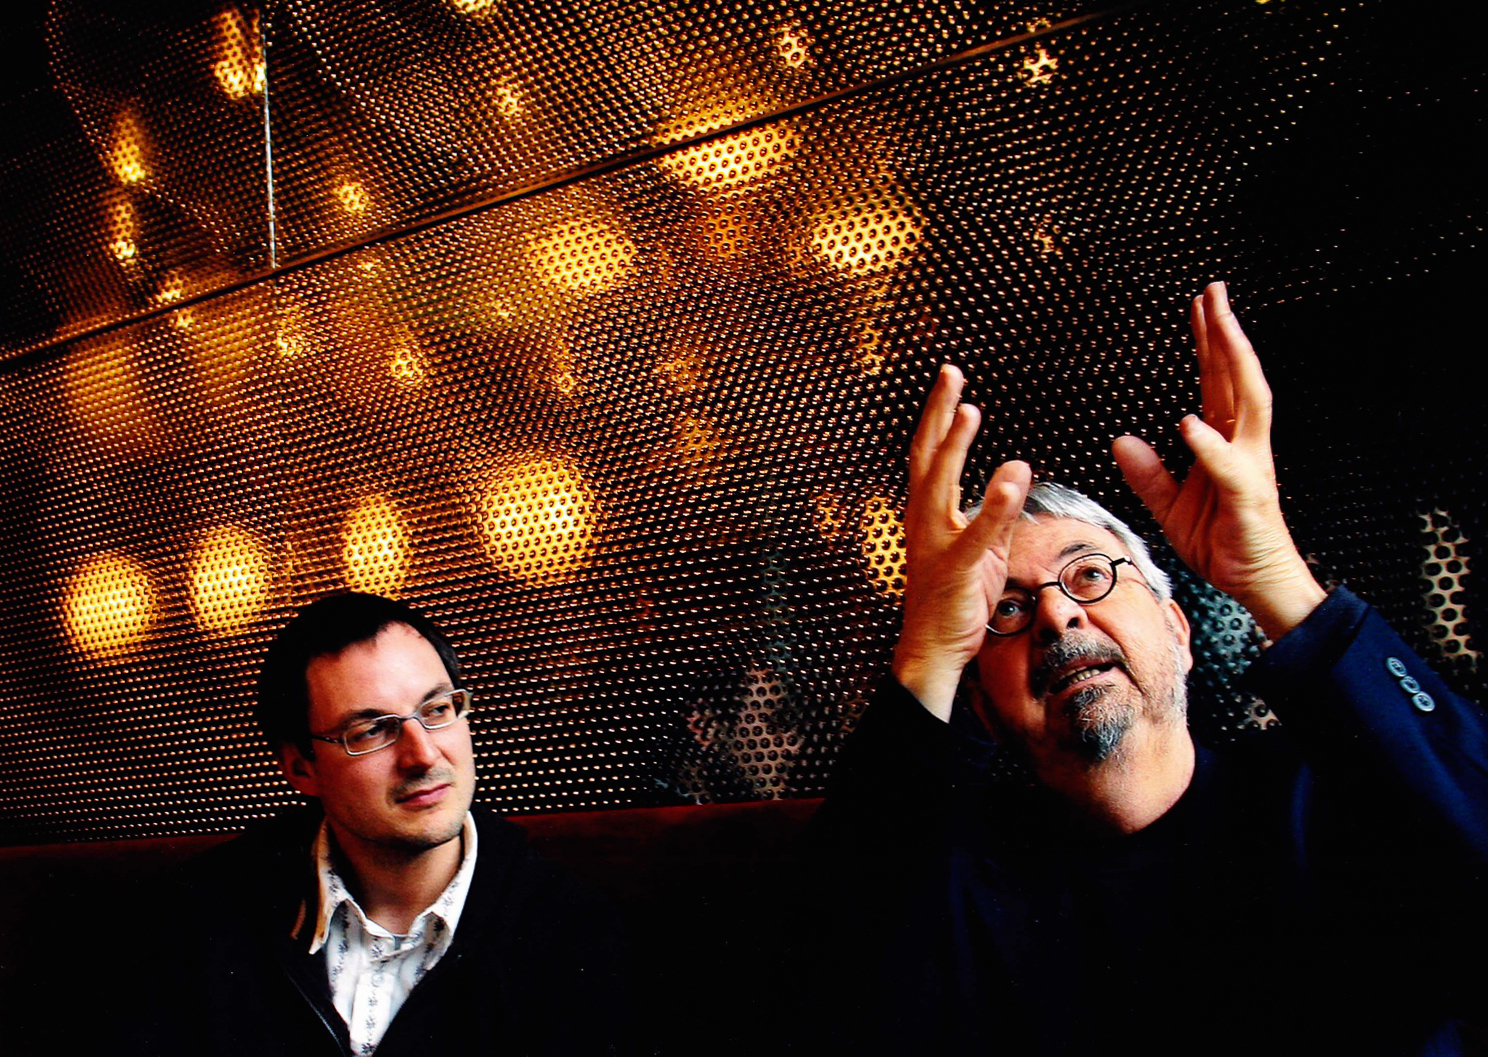 With Michel Tremblay